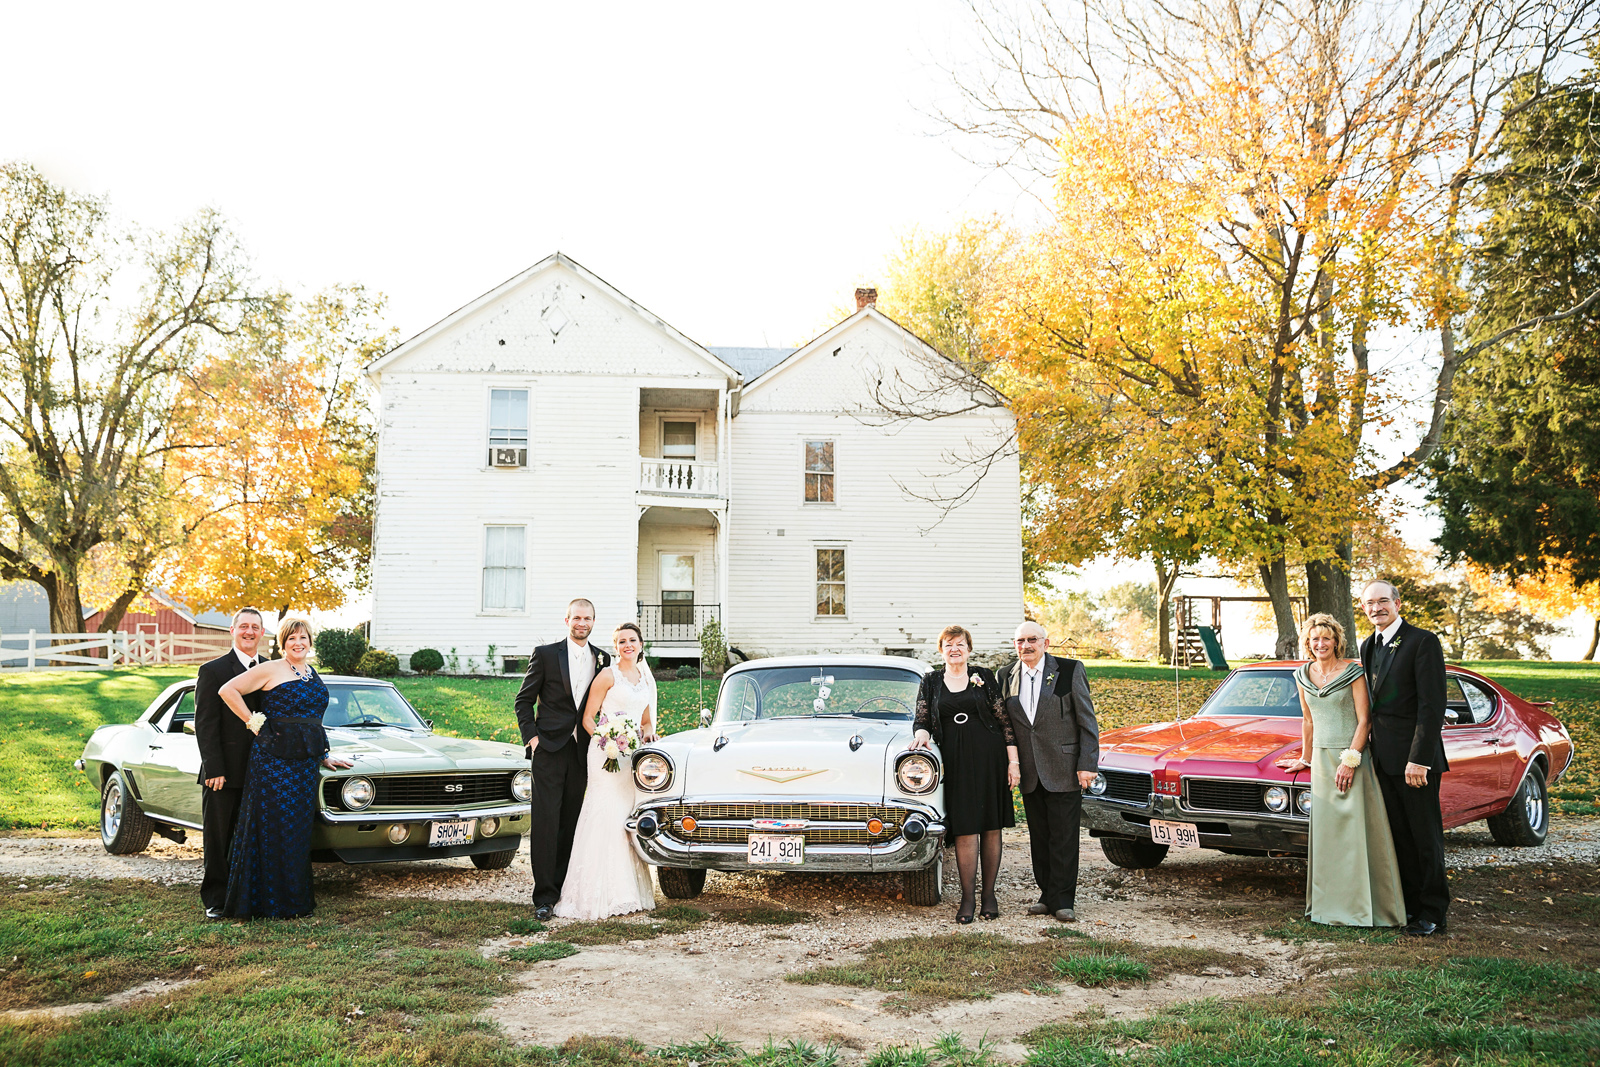 Oldani Photography-St Charles-Wentzville-St Paul-classic cars-red barn-wedding party-wedding photographer-wedding photos_20141025_16355612.jpg